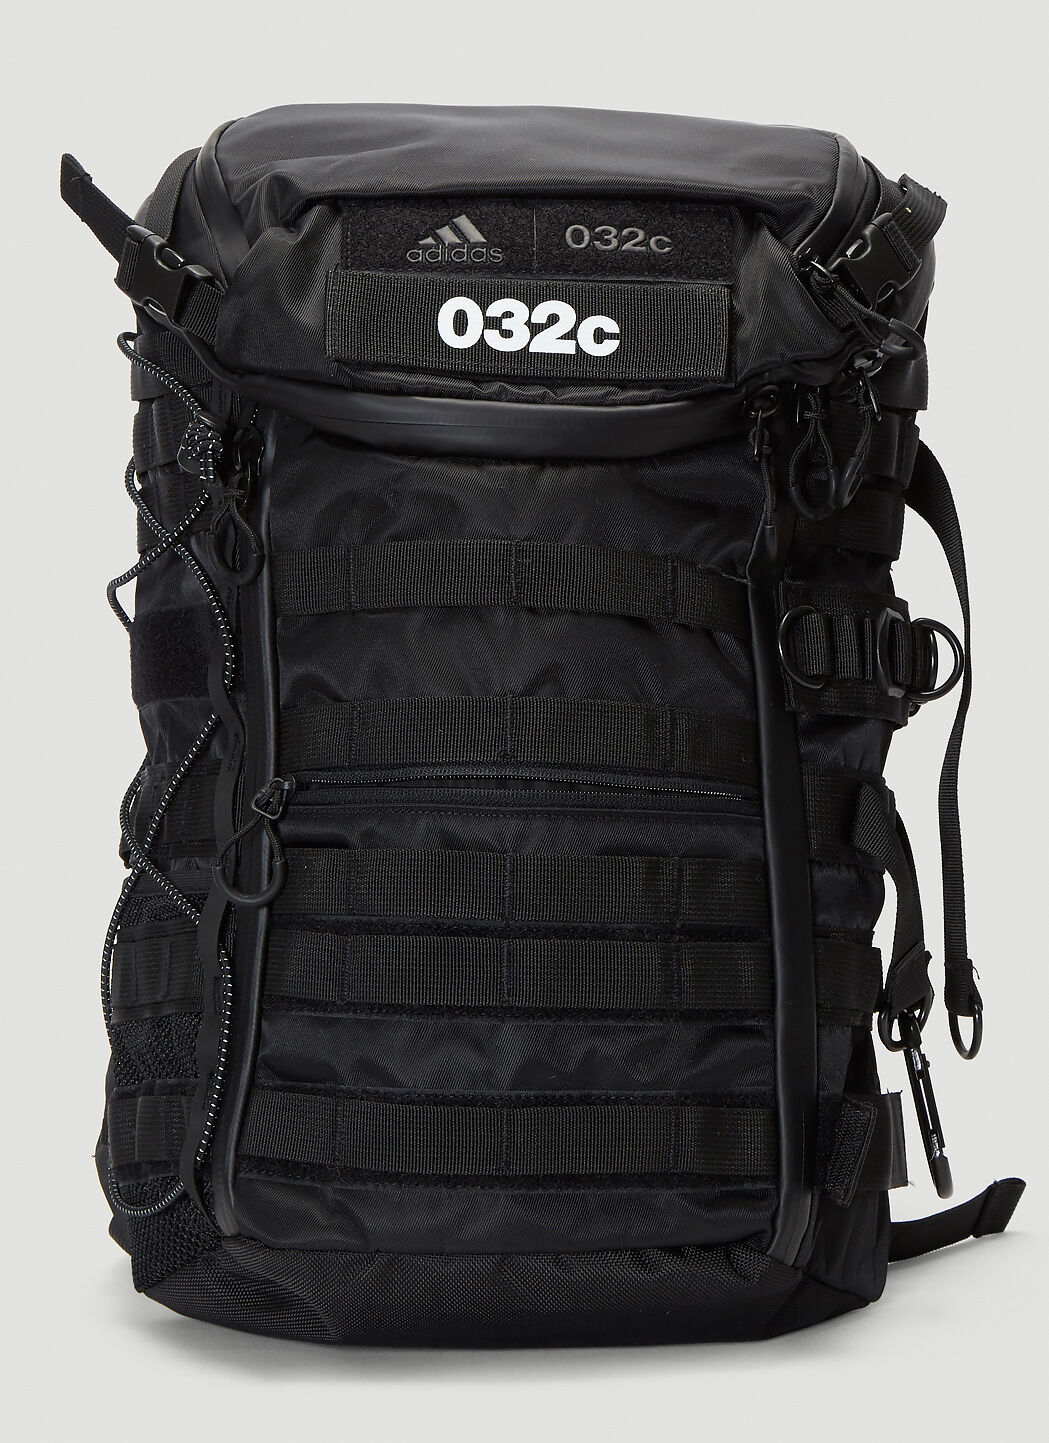 Adidas By 032C Multi functional Backpack   LN CC